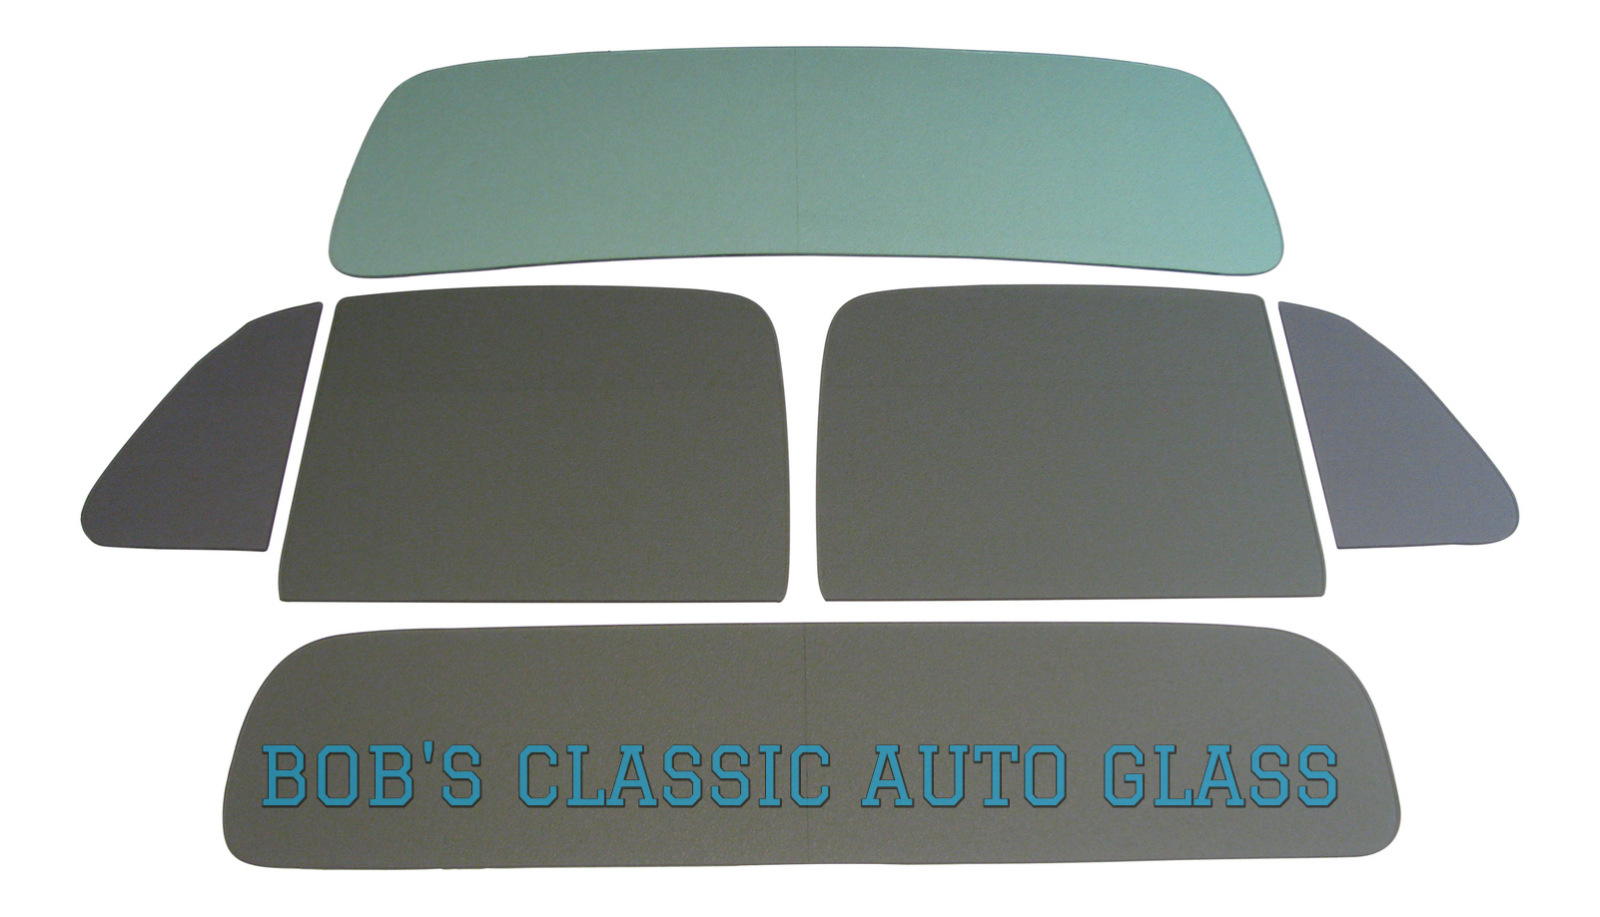 1951 1952 Ford Truck Glass Classic Auto Glass Vintage New Pickup Antique Flat Bob S Classic Auto Glass New Auto Glass Windows Windshields Rubber Seals For Cars And Trucks From 1920 To Today